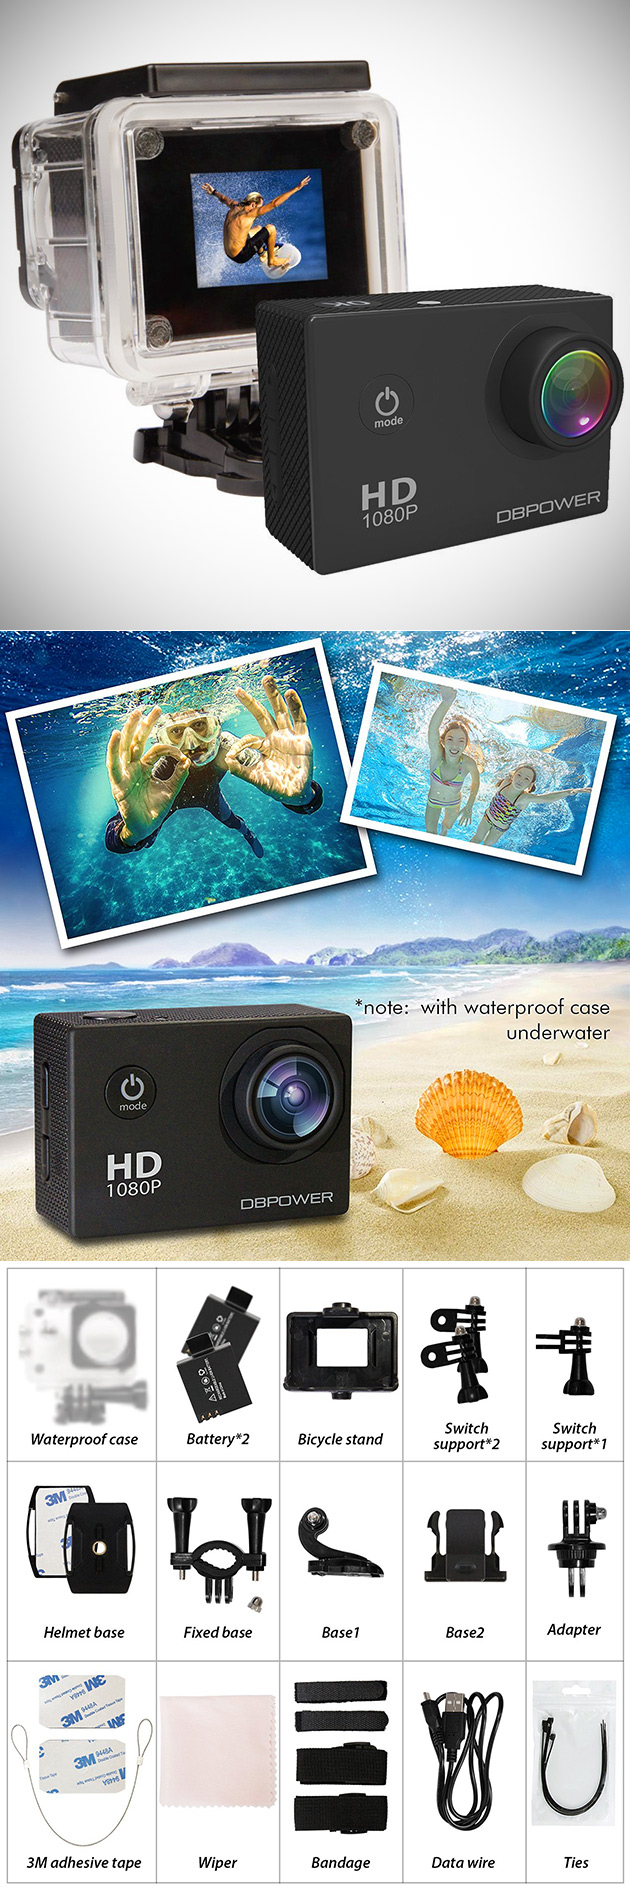 DBPOWER 1080p Action Cam